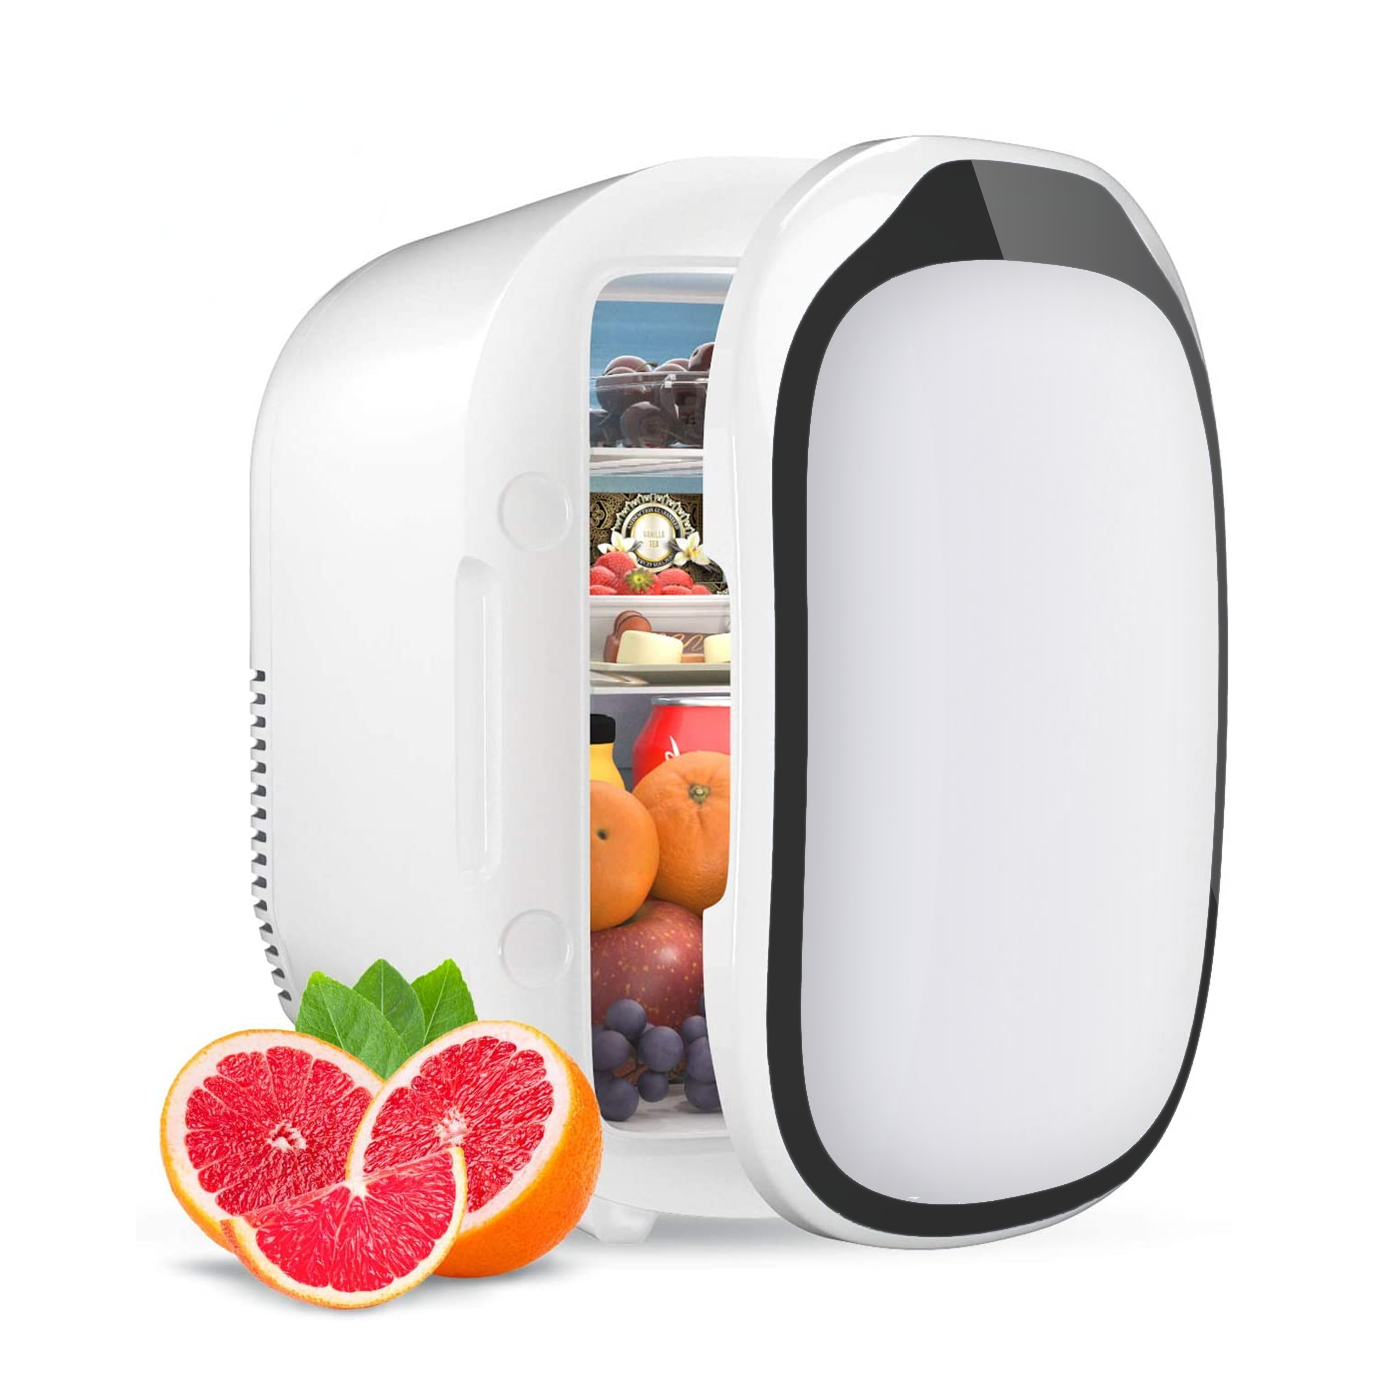 Small Skincare Makeup Fridge Portable Mini Refrigerator Cosmetic Car Fridge Freezer Magnet Beauty Mini Fridges